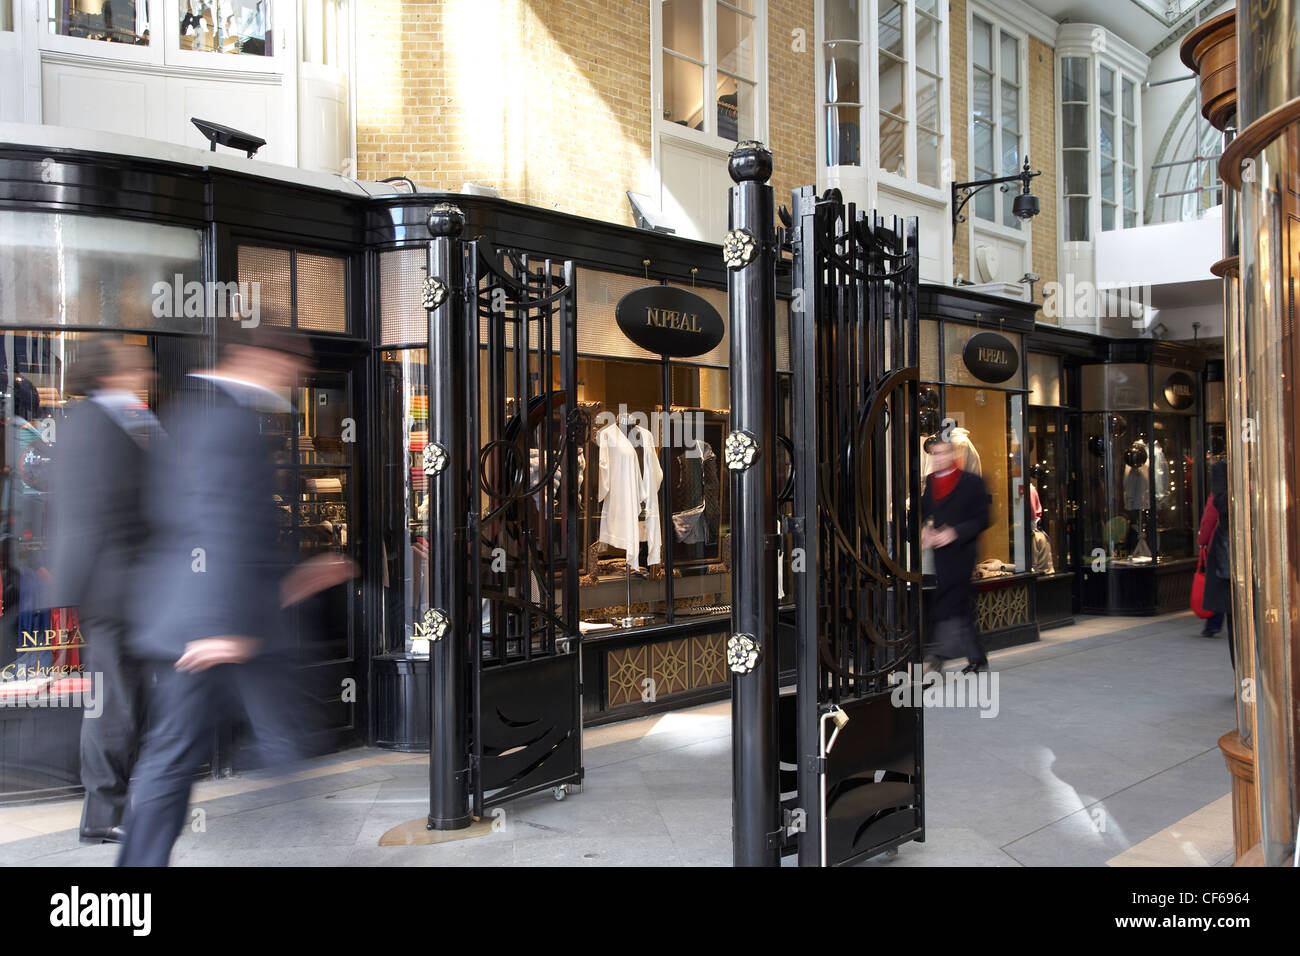 Interior view of the Burlington Arcade in Piccadilly. - Stock Image